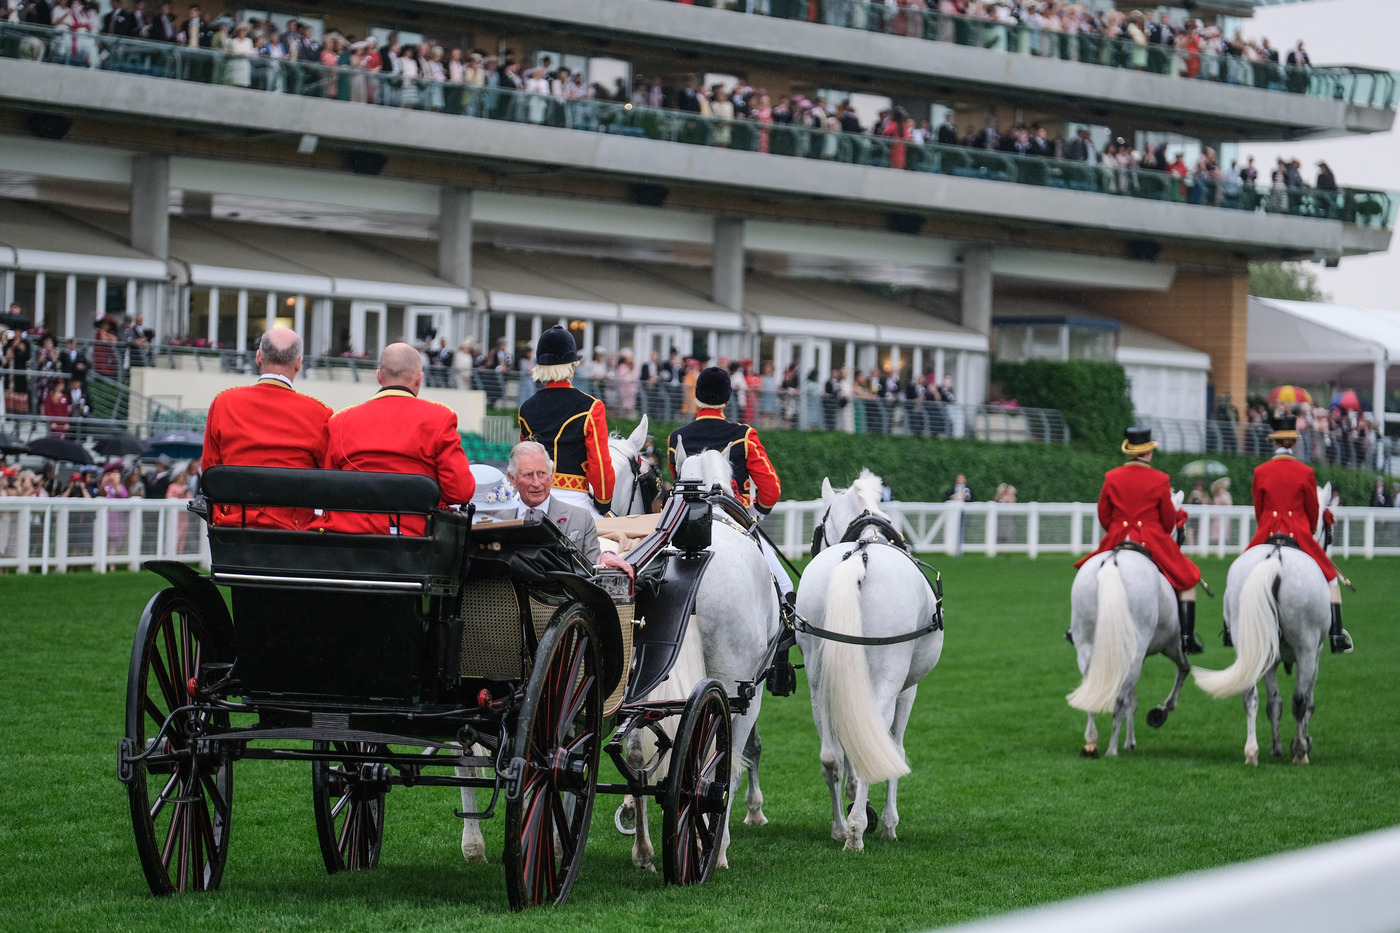 Longines Flat Racing Event: Longines celebrates elegance at Royal Ascot with Chi Ling Lin 12